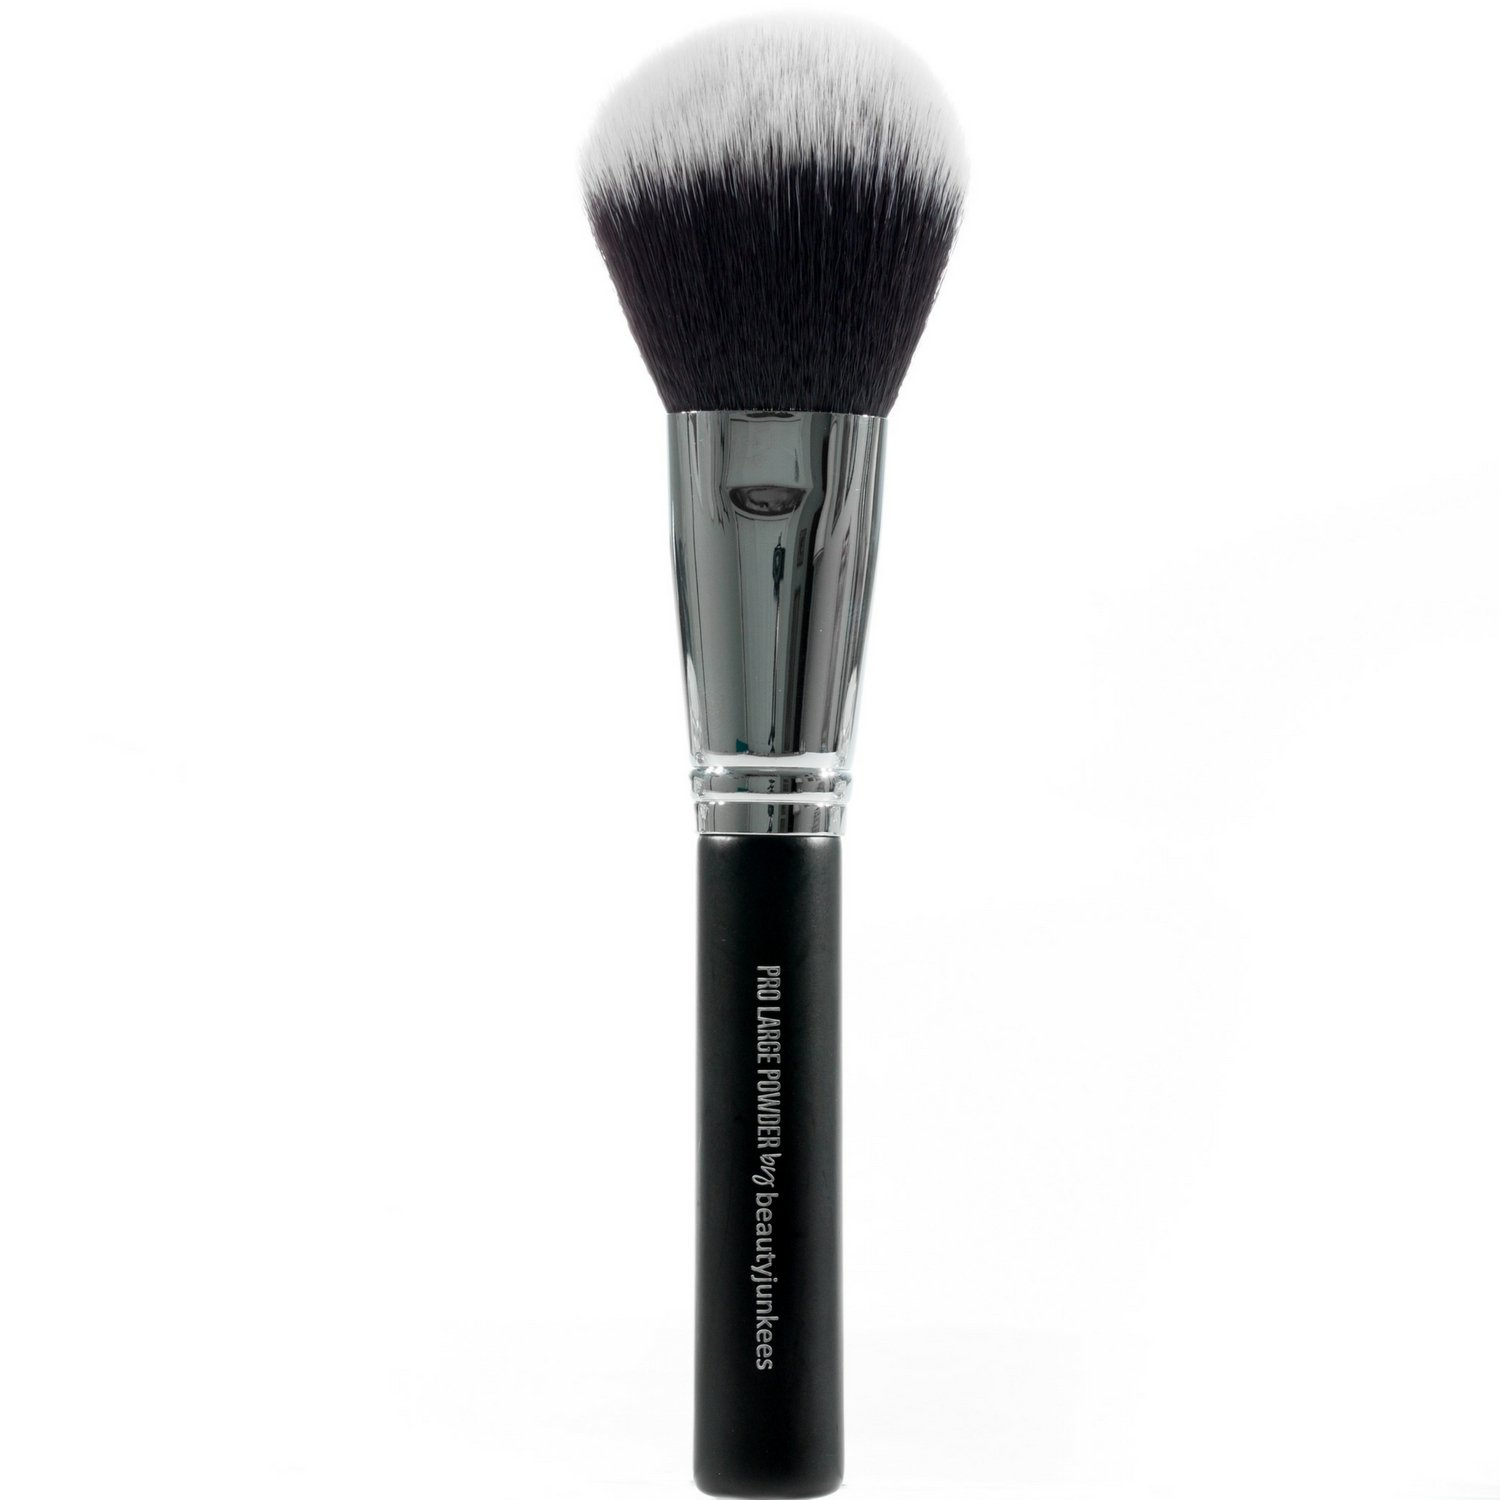 Amazon.com: Large Finishing Powder Makeup Brush - Big Fluffy Powder Make Up Brush for Face and All Over Body Bronzer, Loose, Mineral, Compact, ...